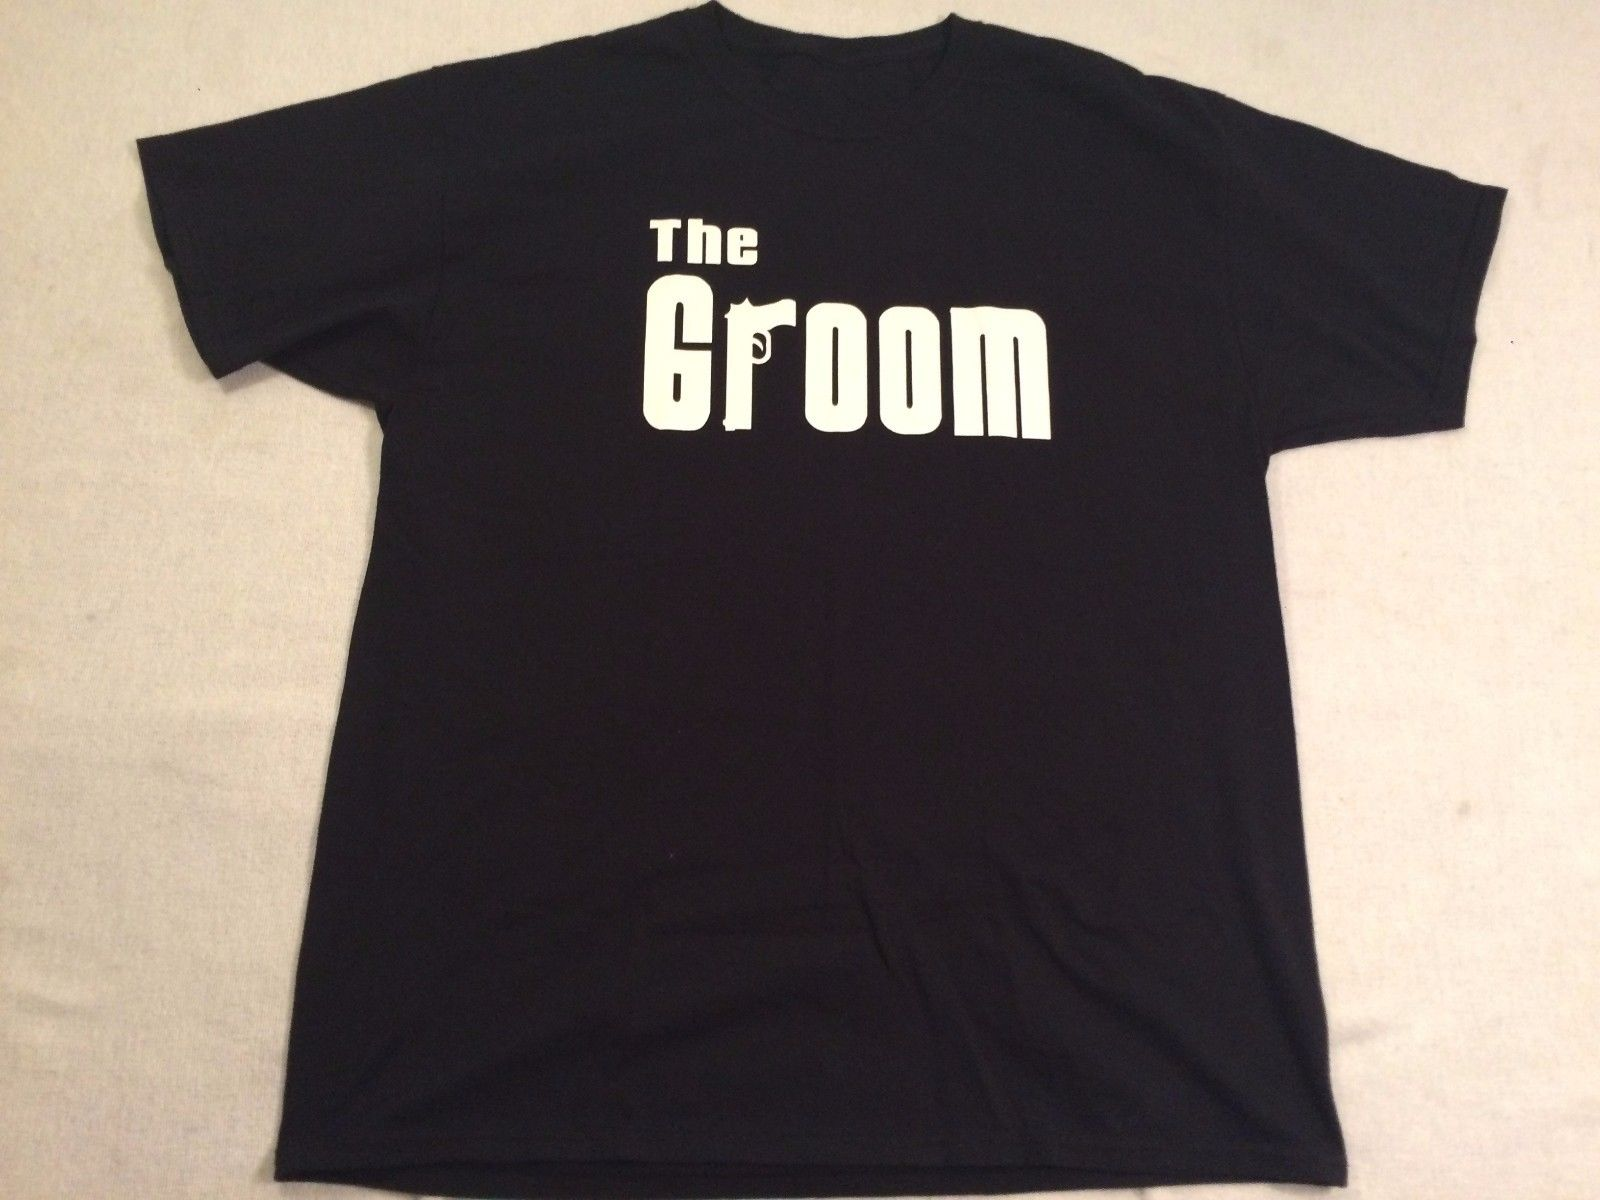 THE GROOM T SHIRT MENS XL BLACK WHITE HBO SOPRANOS LOGO GUN HUSBAND MARRIAGE ...